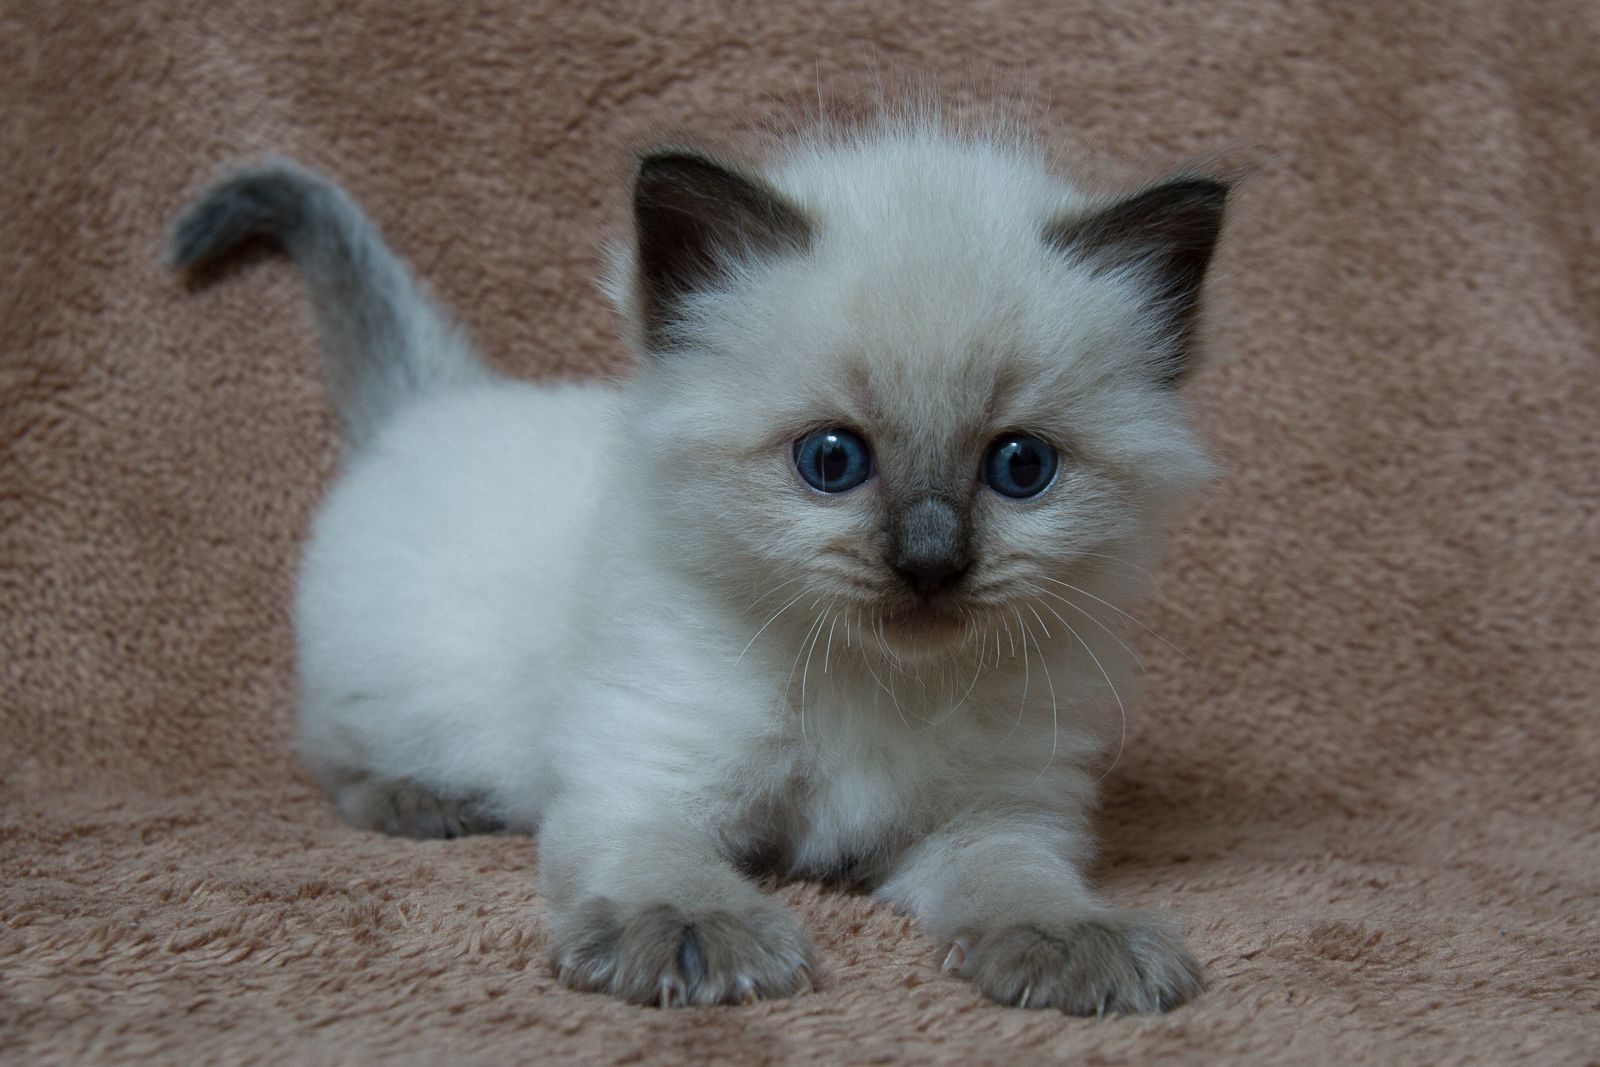 2014 Mack A Zwollywood Cat 5 Weeks Old Ragdoll Kitten Seal Colourpoint Cars Litter